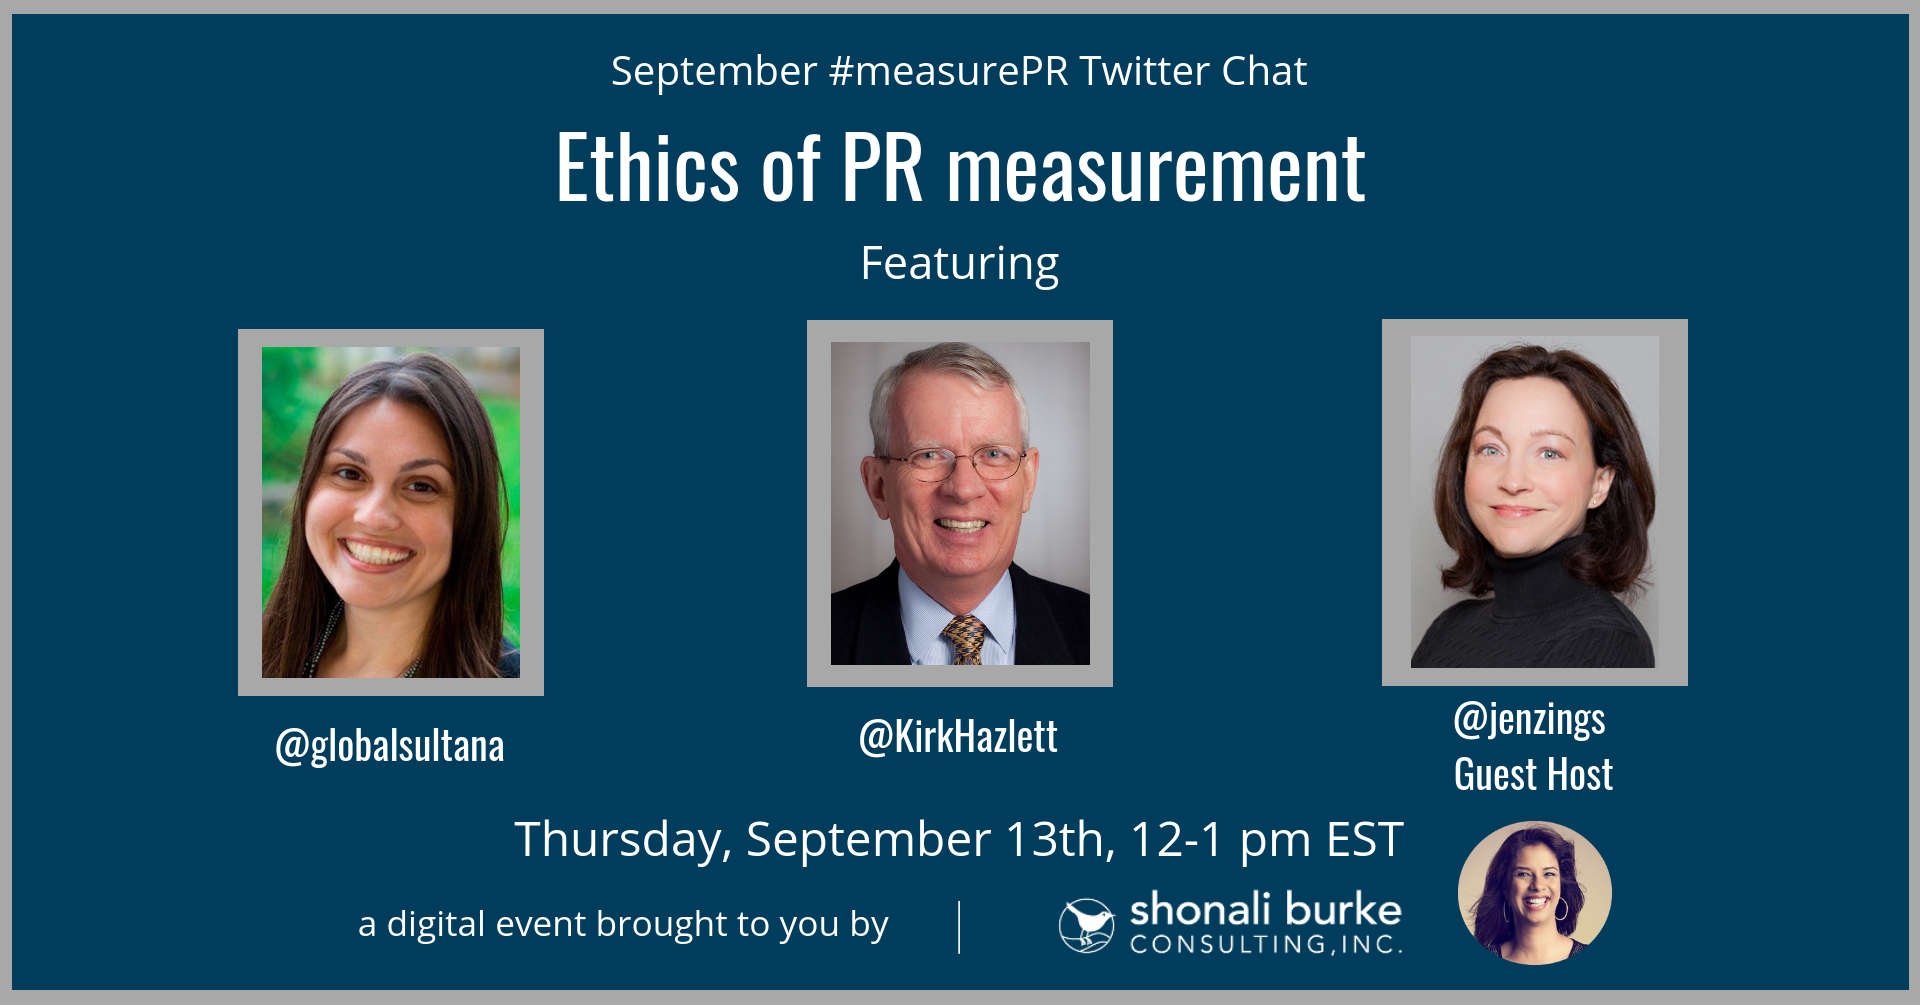 #measurePR